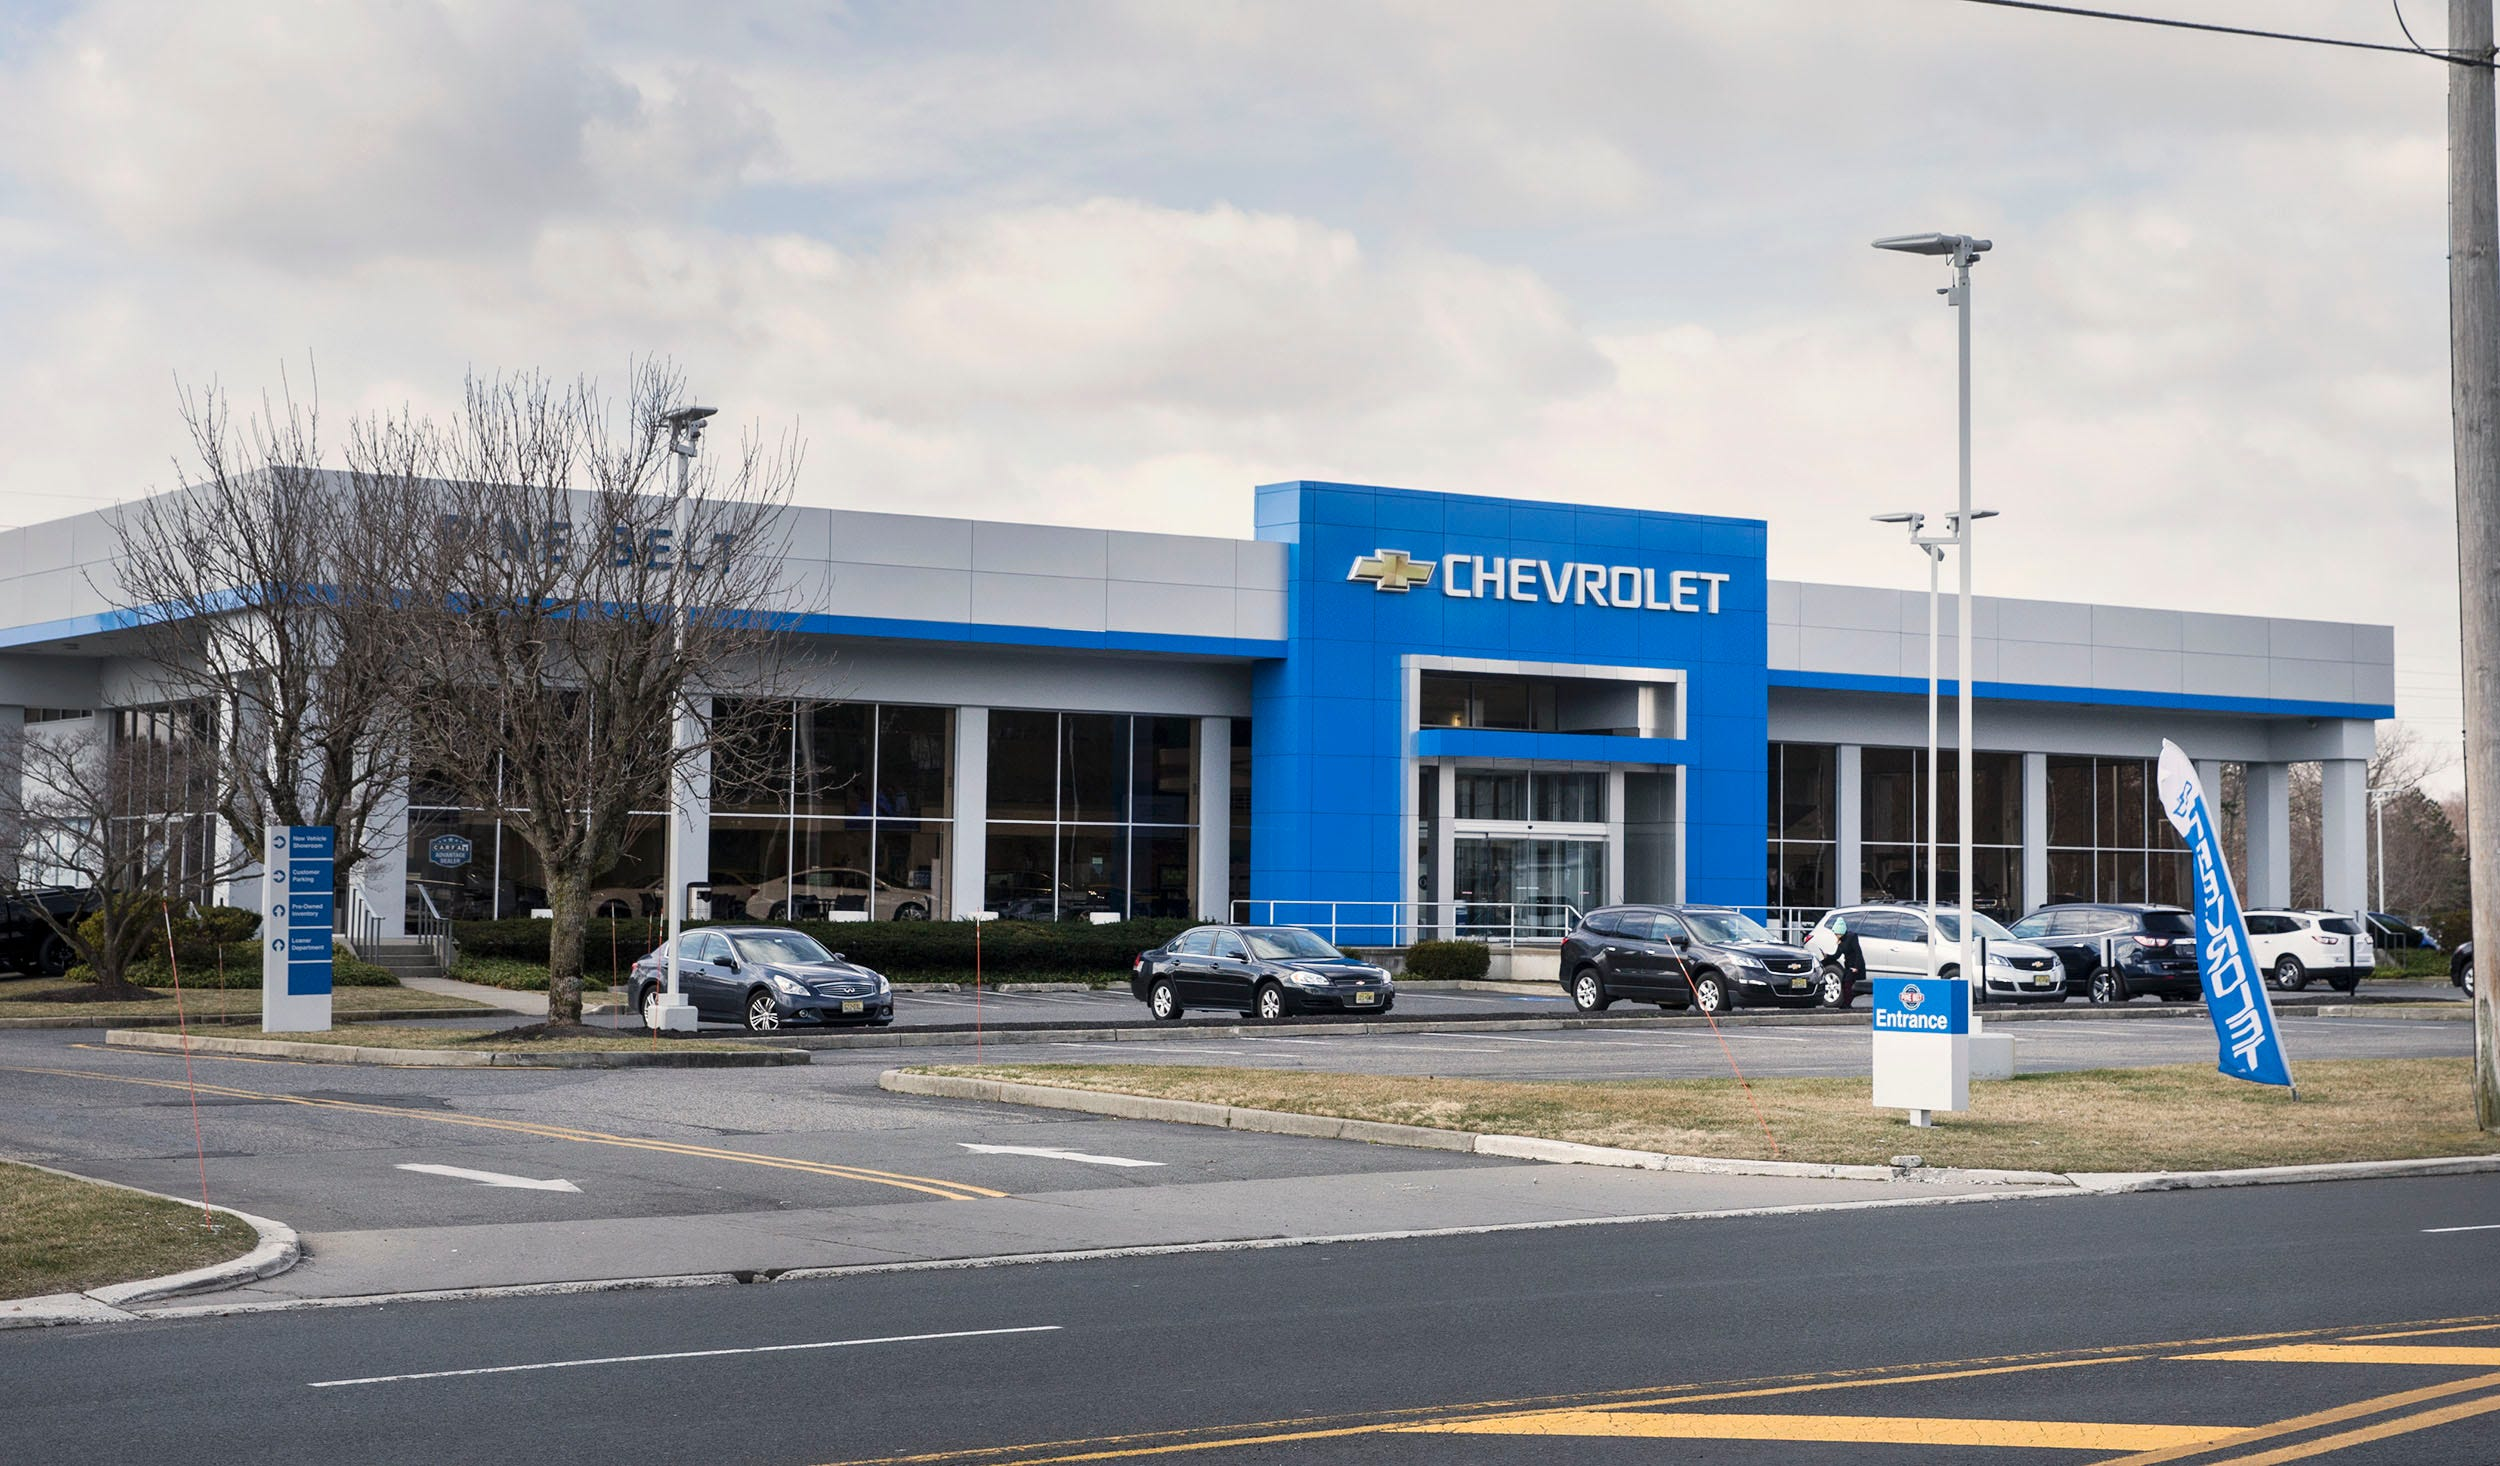 Pine Belt Chevrolet On Route 88 In Lakewood. Pine Belt